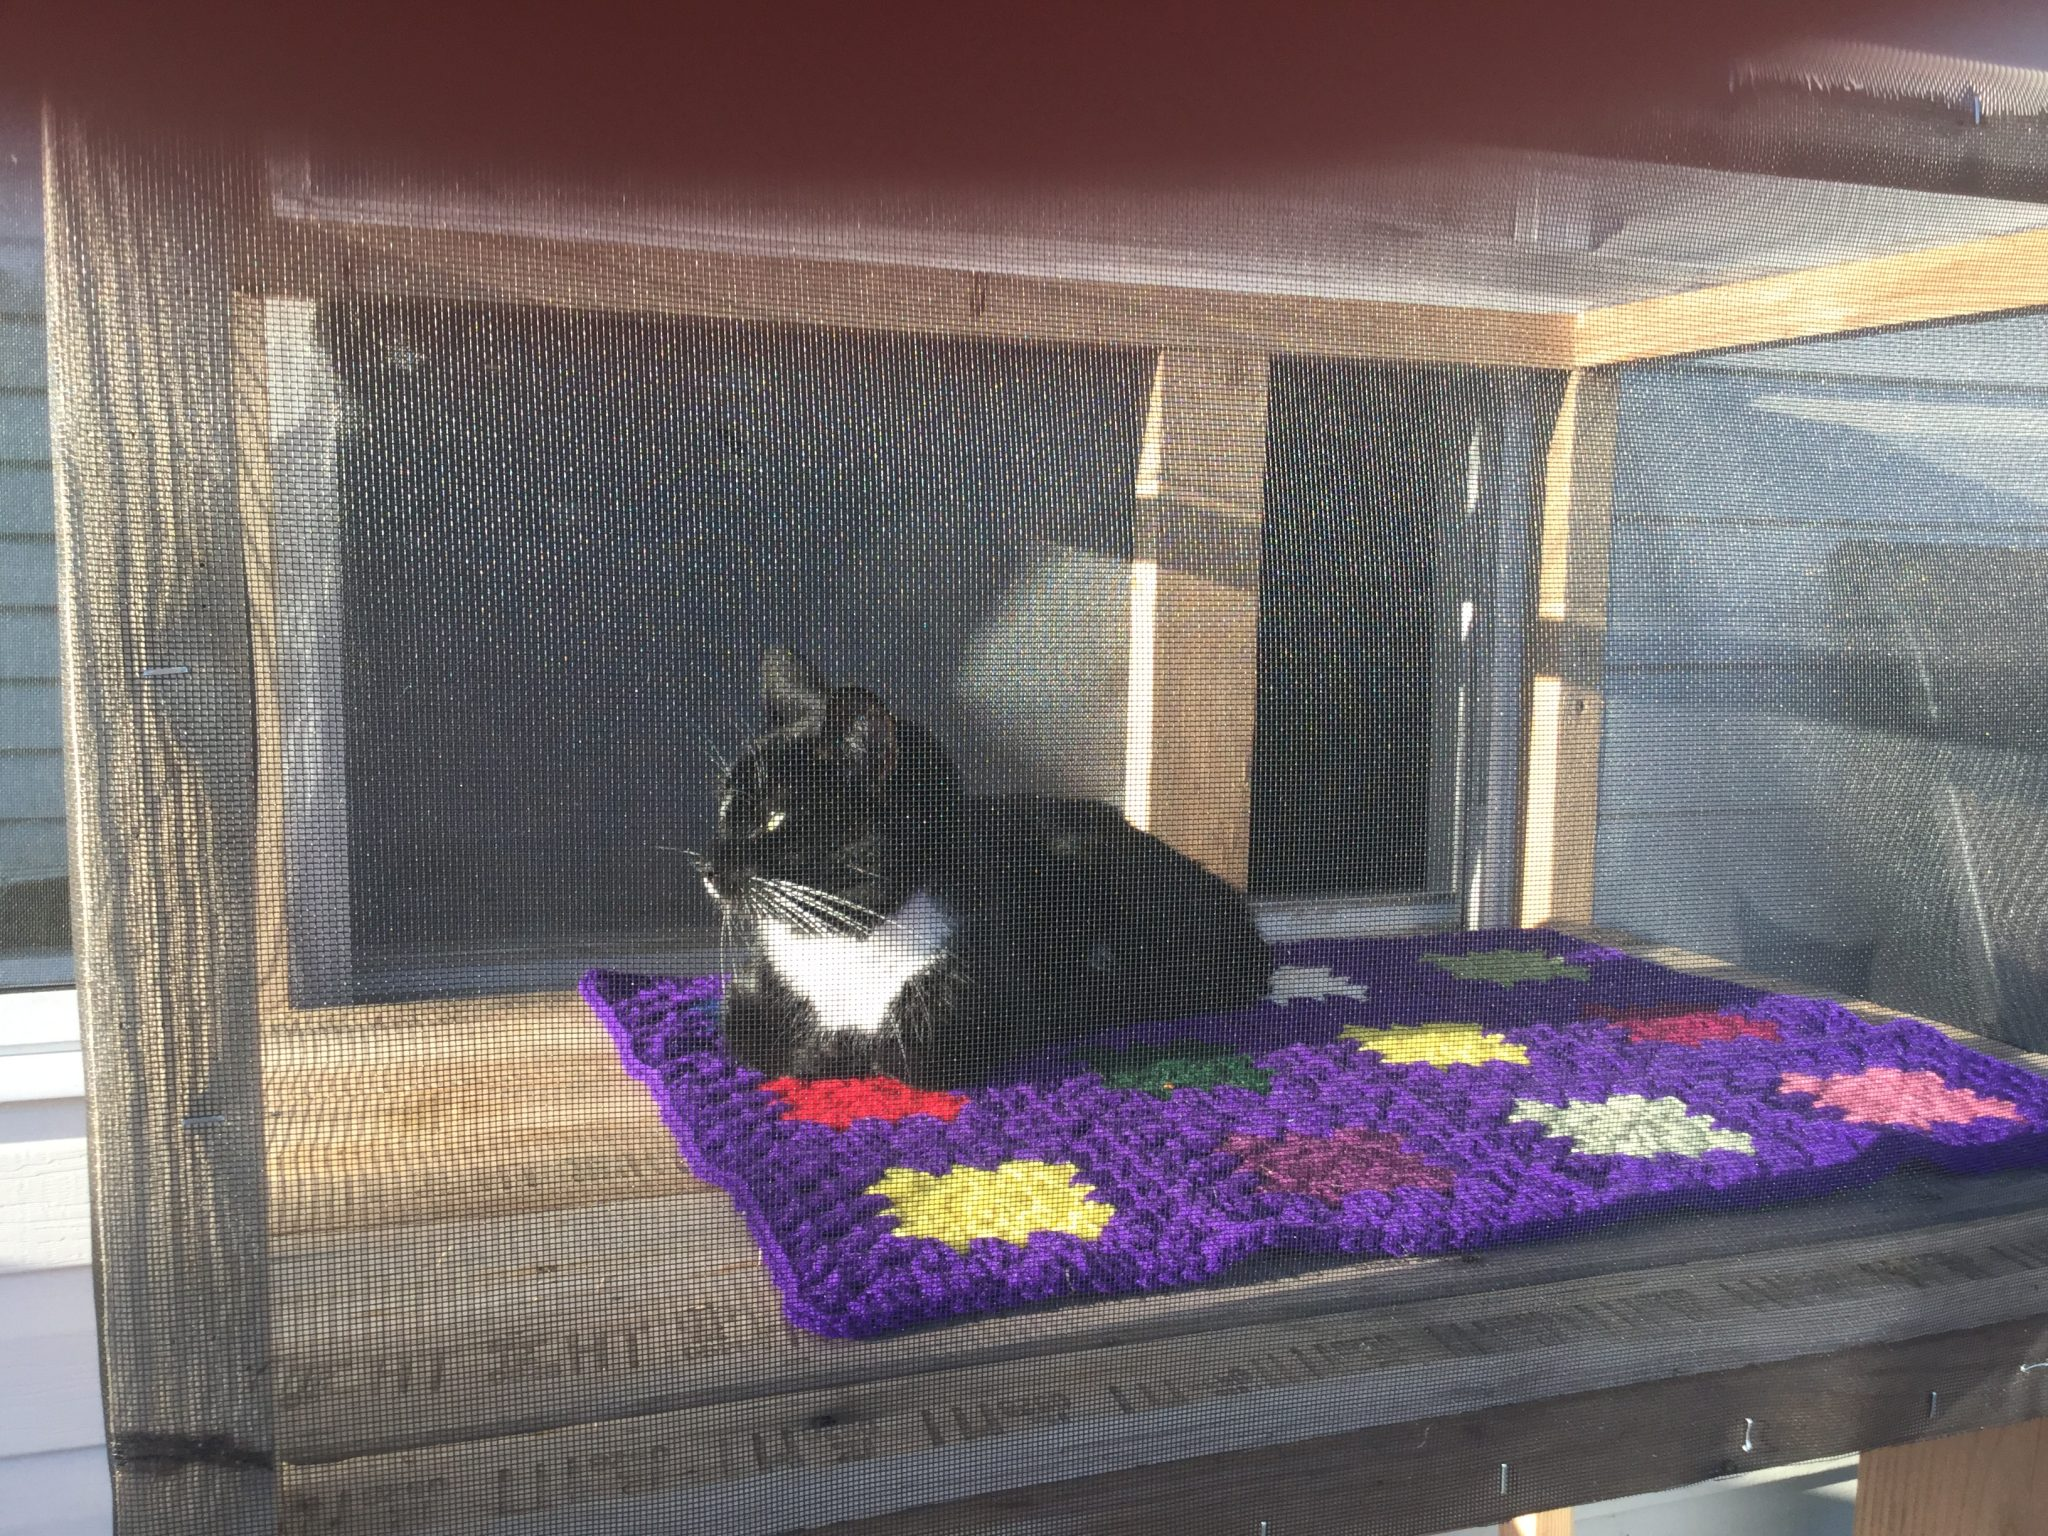 Cat sits on catio in sunshine